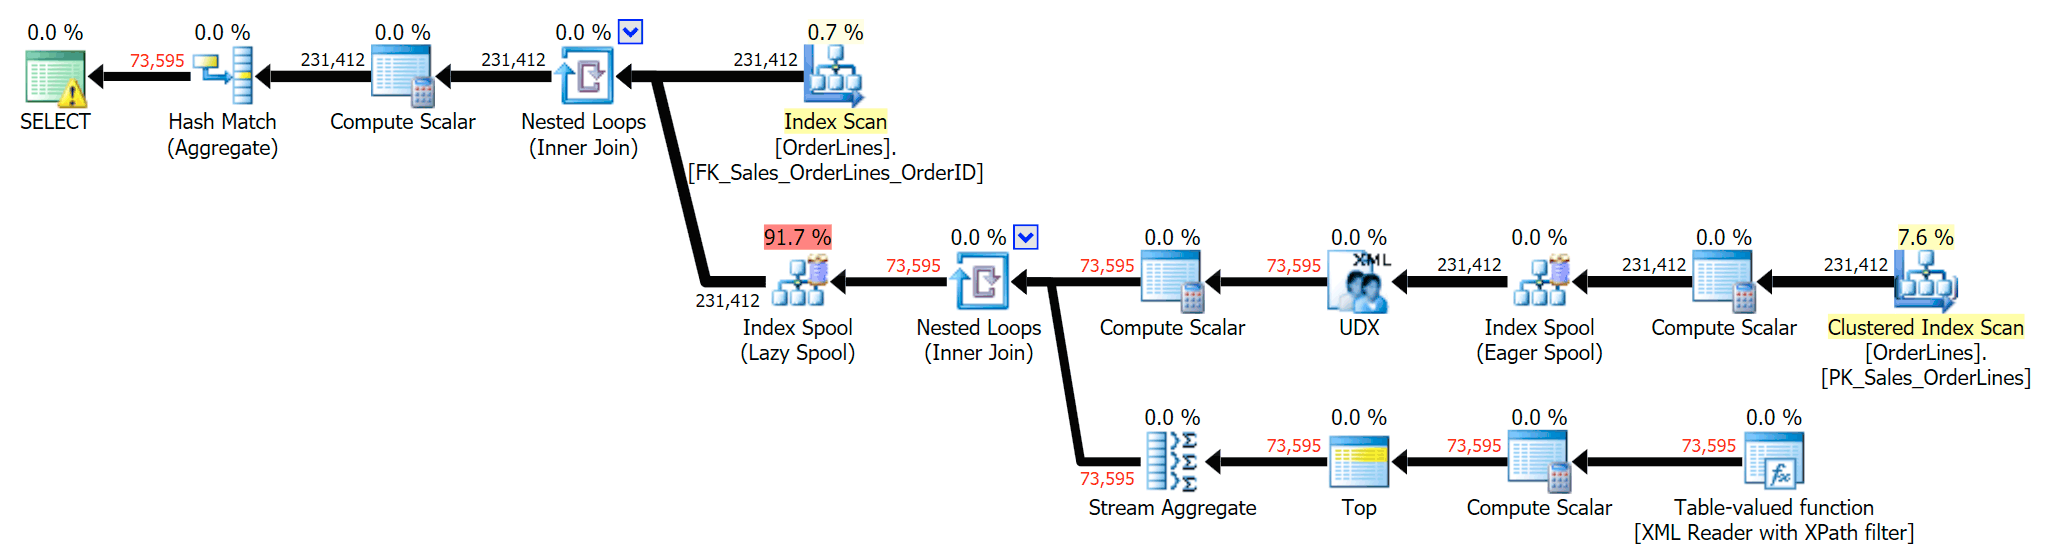 Execution plan for DISTINCT, with re-costed I/O